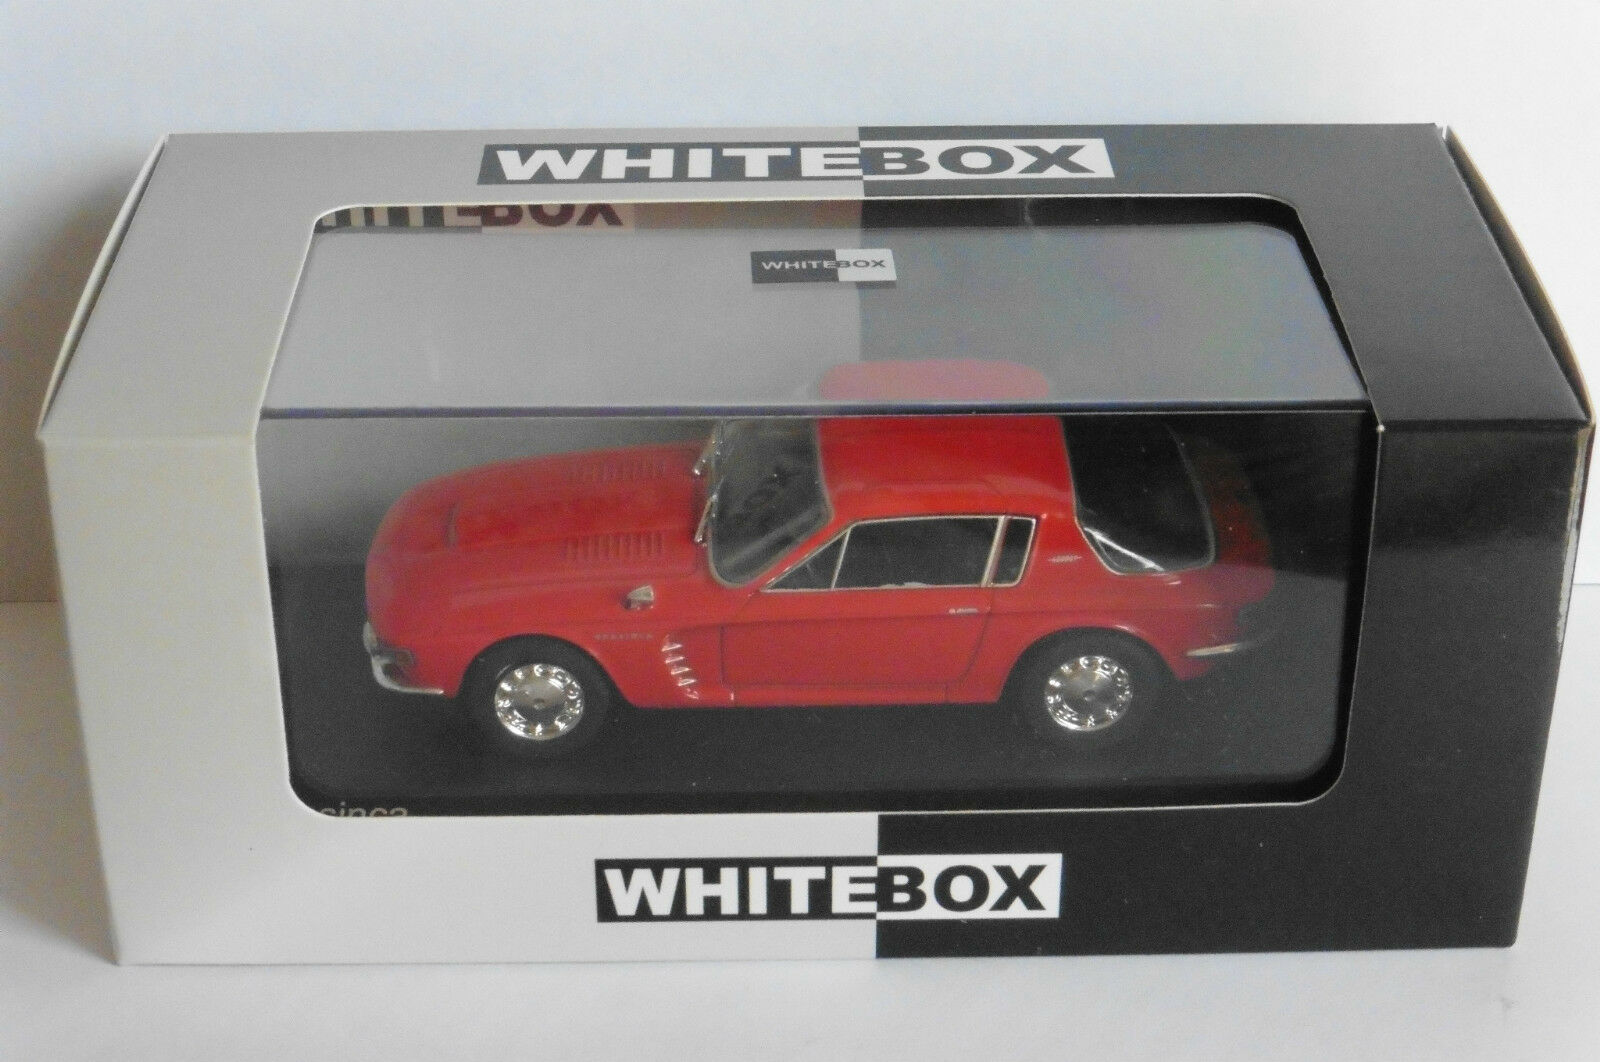 BRASINCA 4200 GT RED 1965 WHITEBOX WB102 1 43 red red red LHD LEFT HAND DRIV